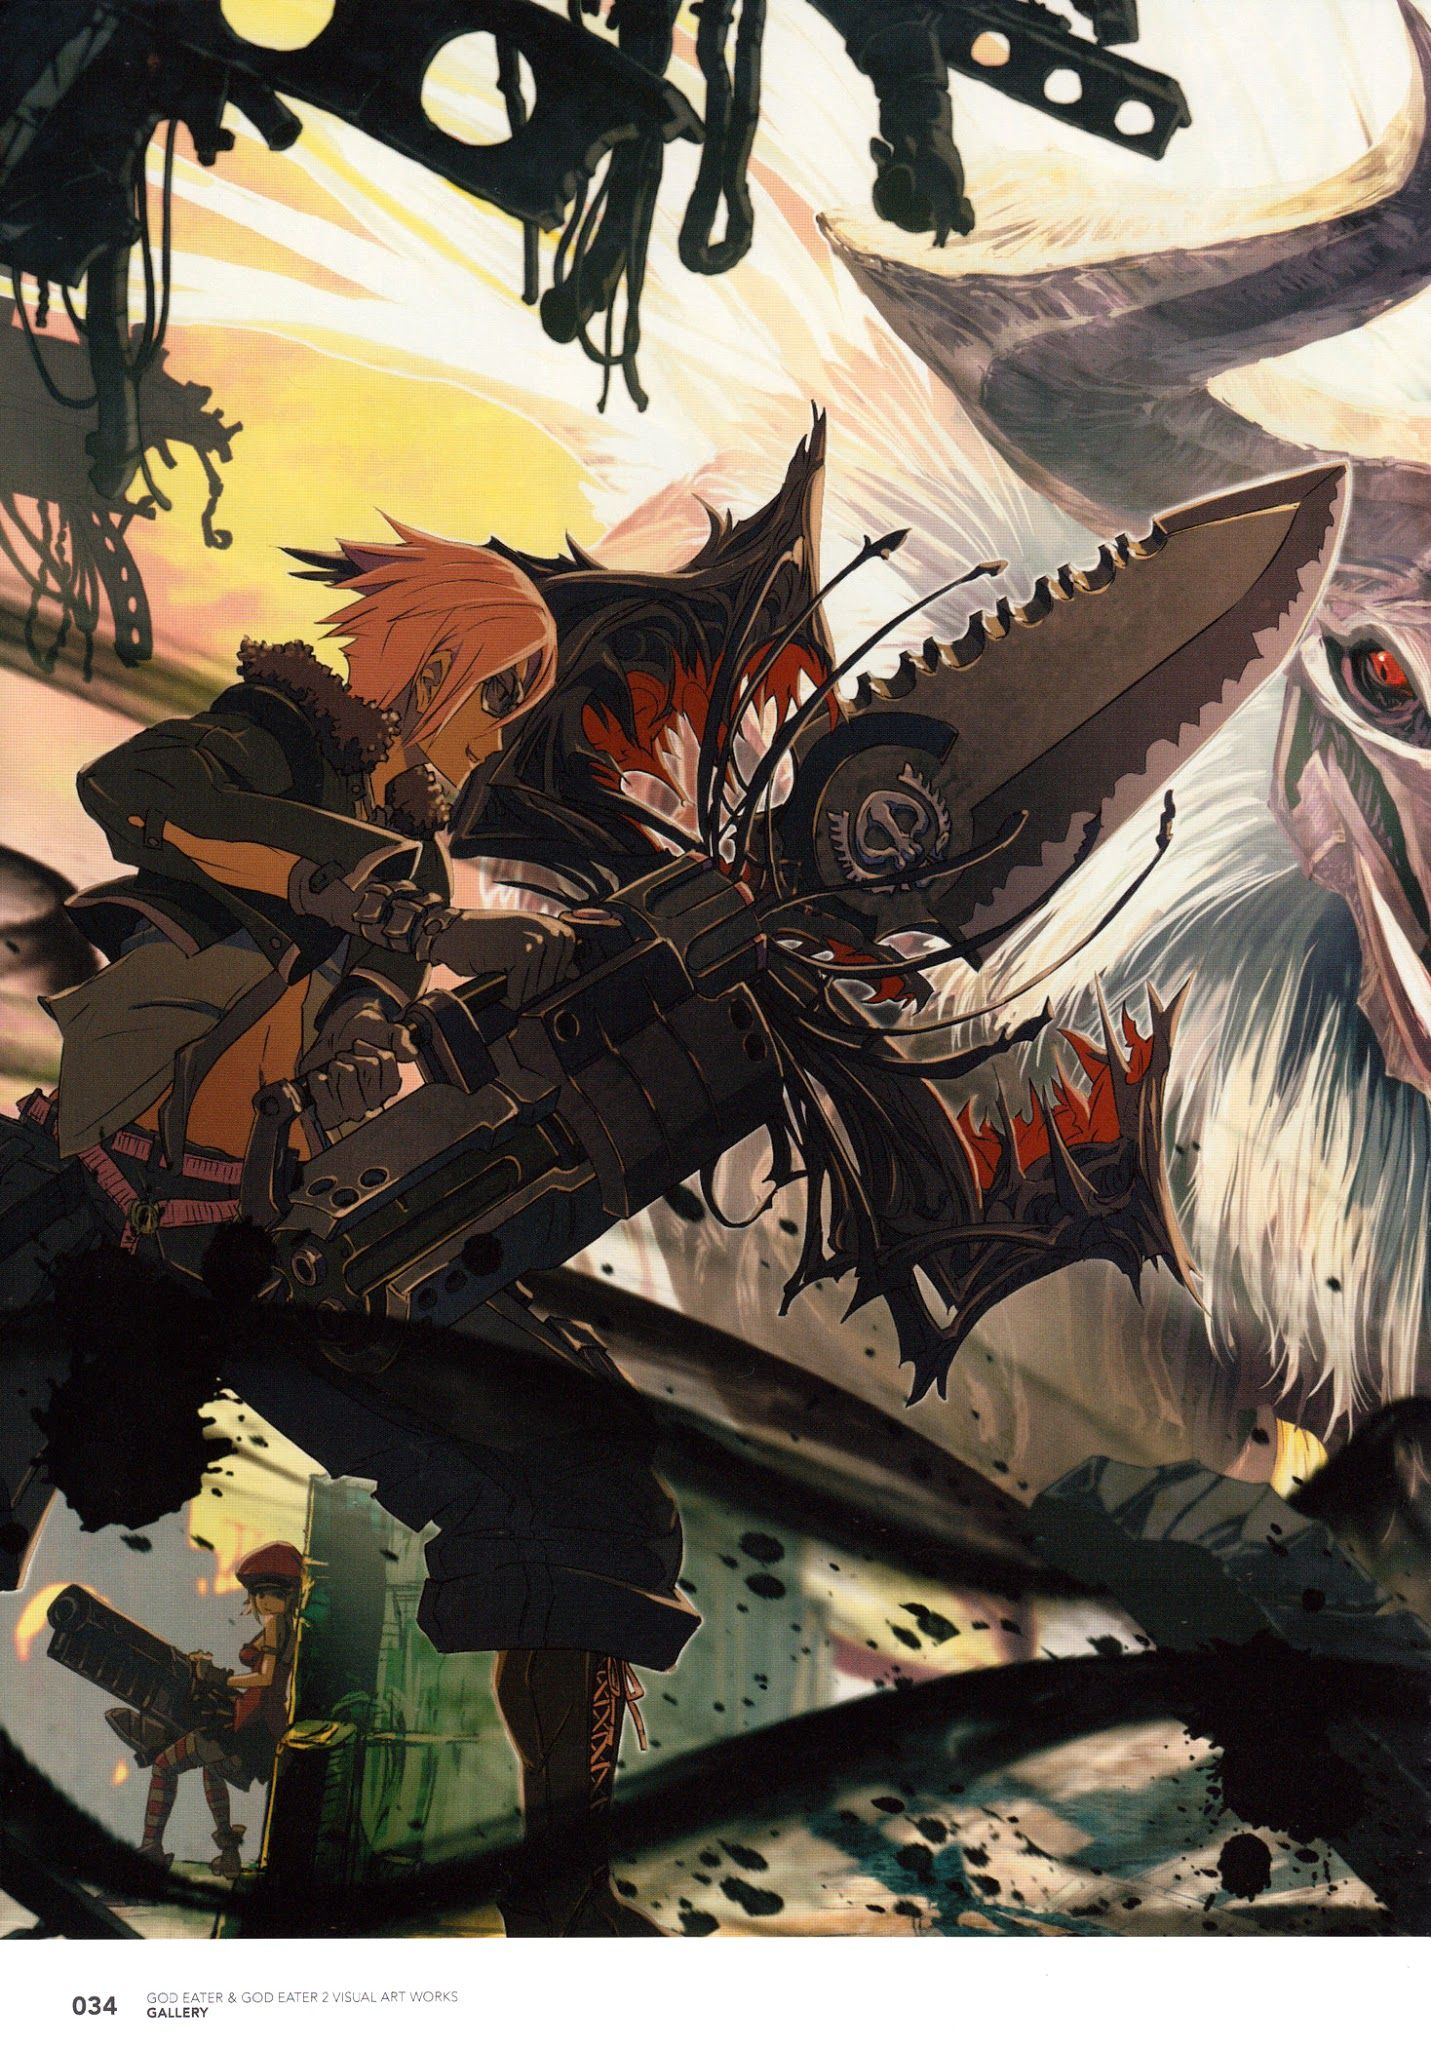 Pin by Grn 0083 on God Eater Awesome anime, Anime, Like